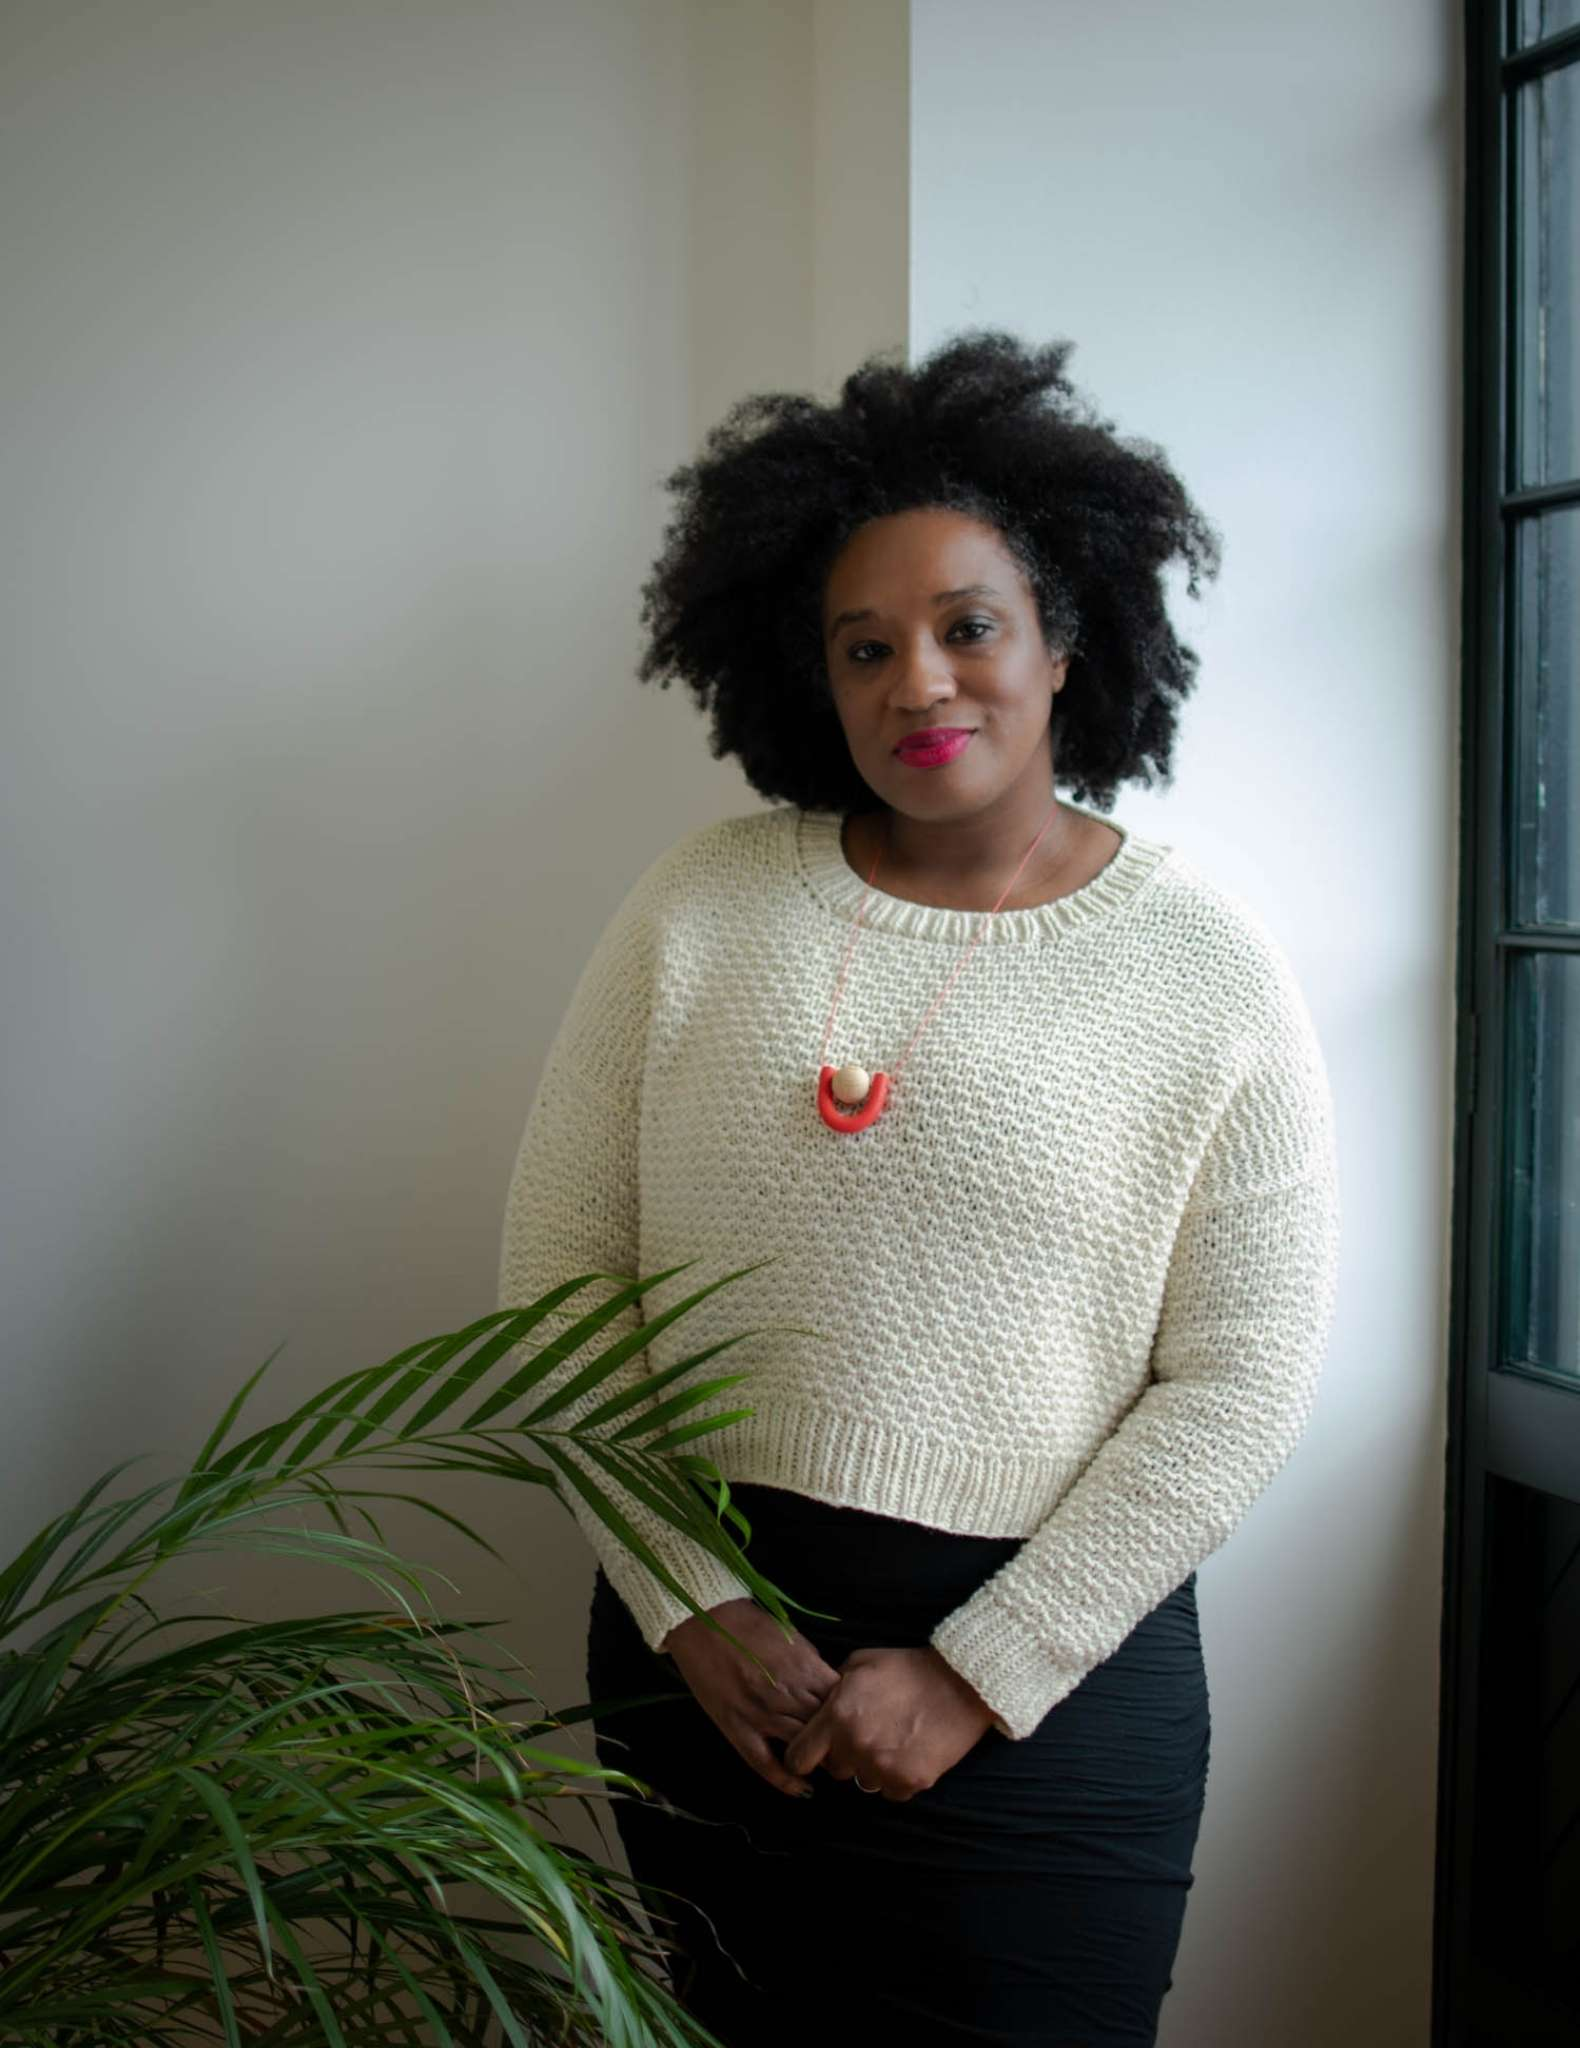 a black woman wearing a cropped white sweater stands beside a houseplant, her hands are clasped together in front of her and she wears an orange necklace